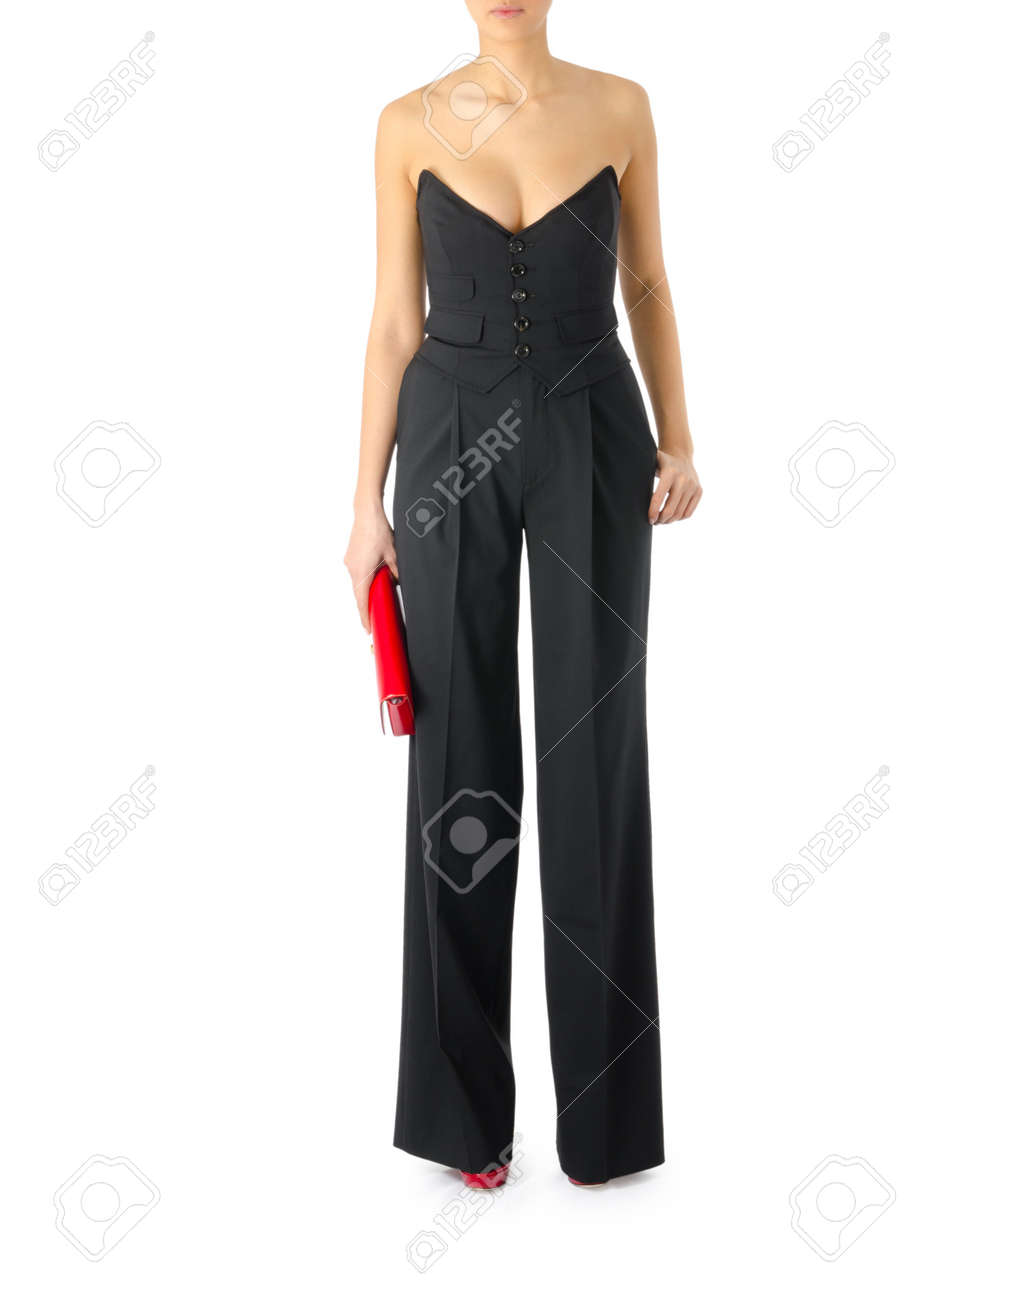 Woman in fashion concept on white Stock Photo - 20838801